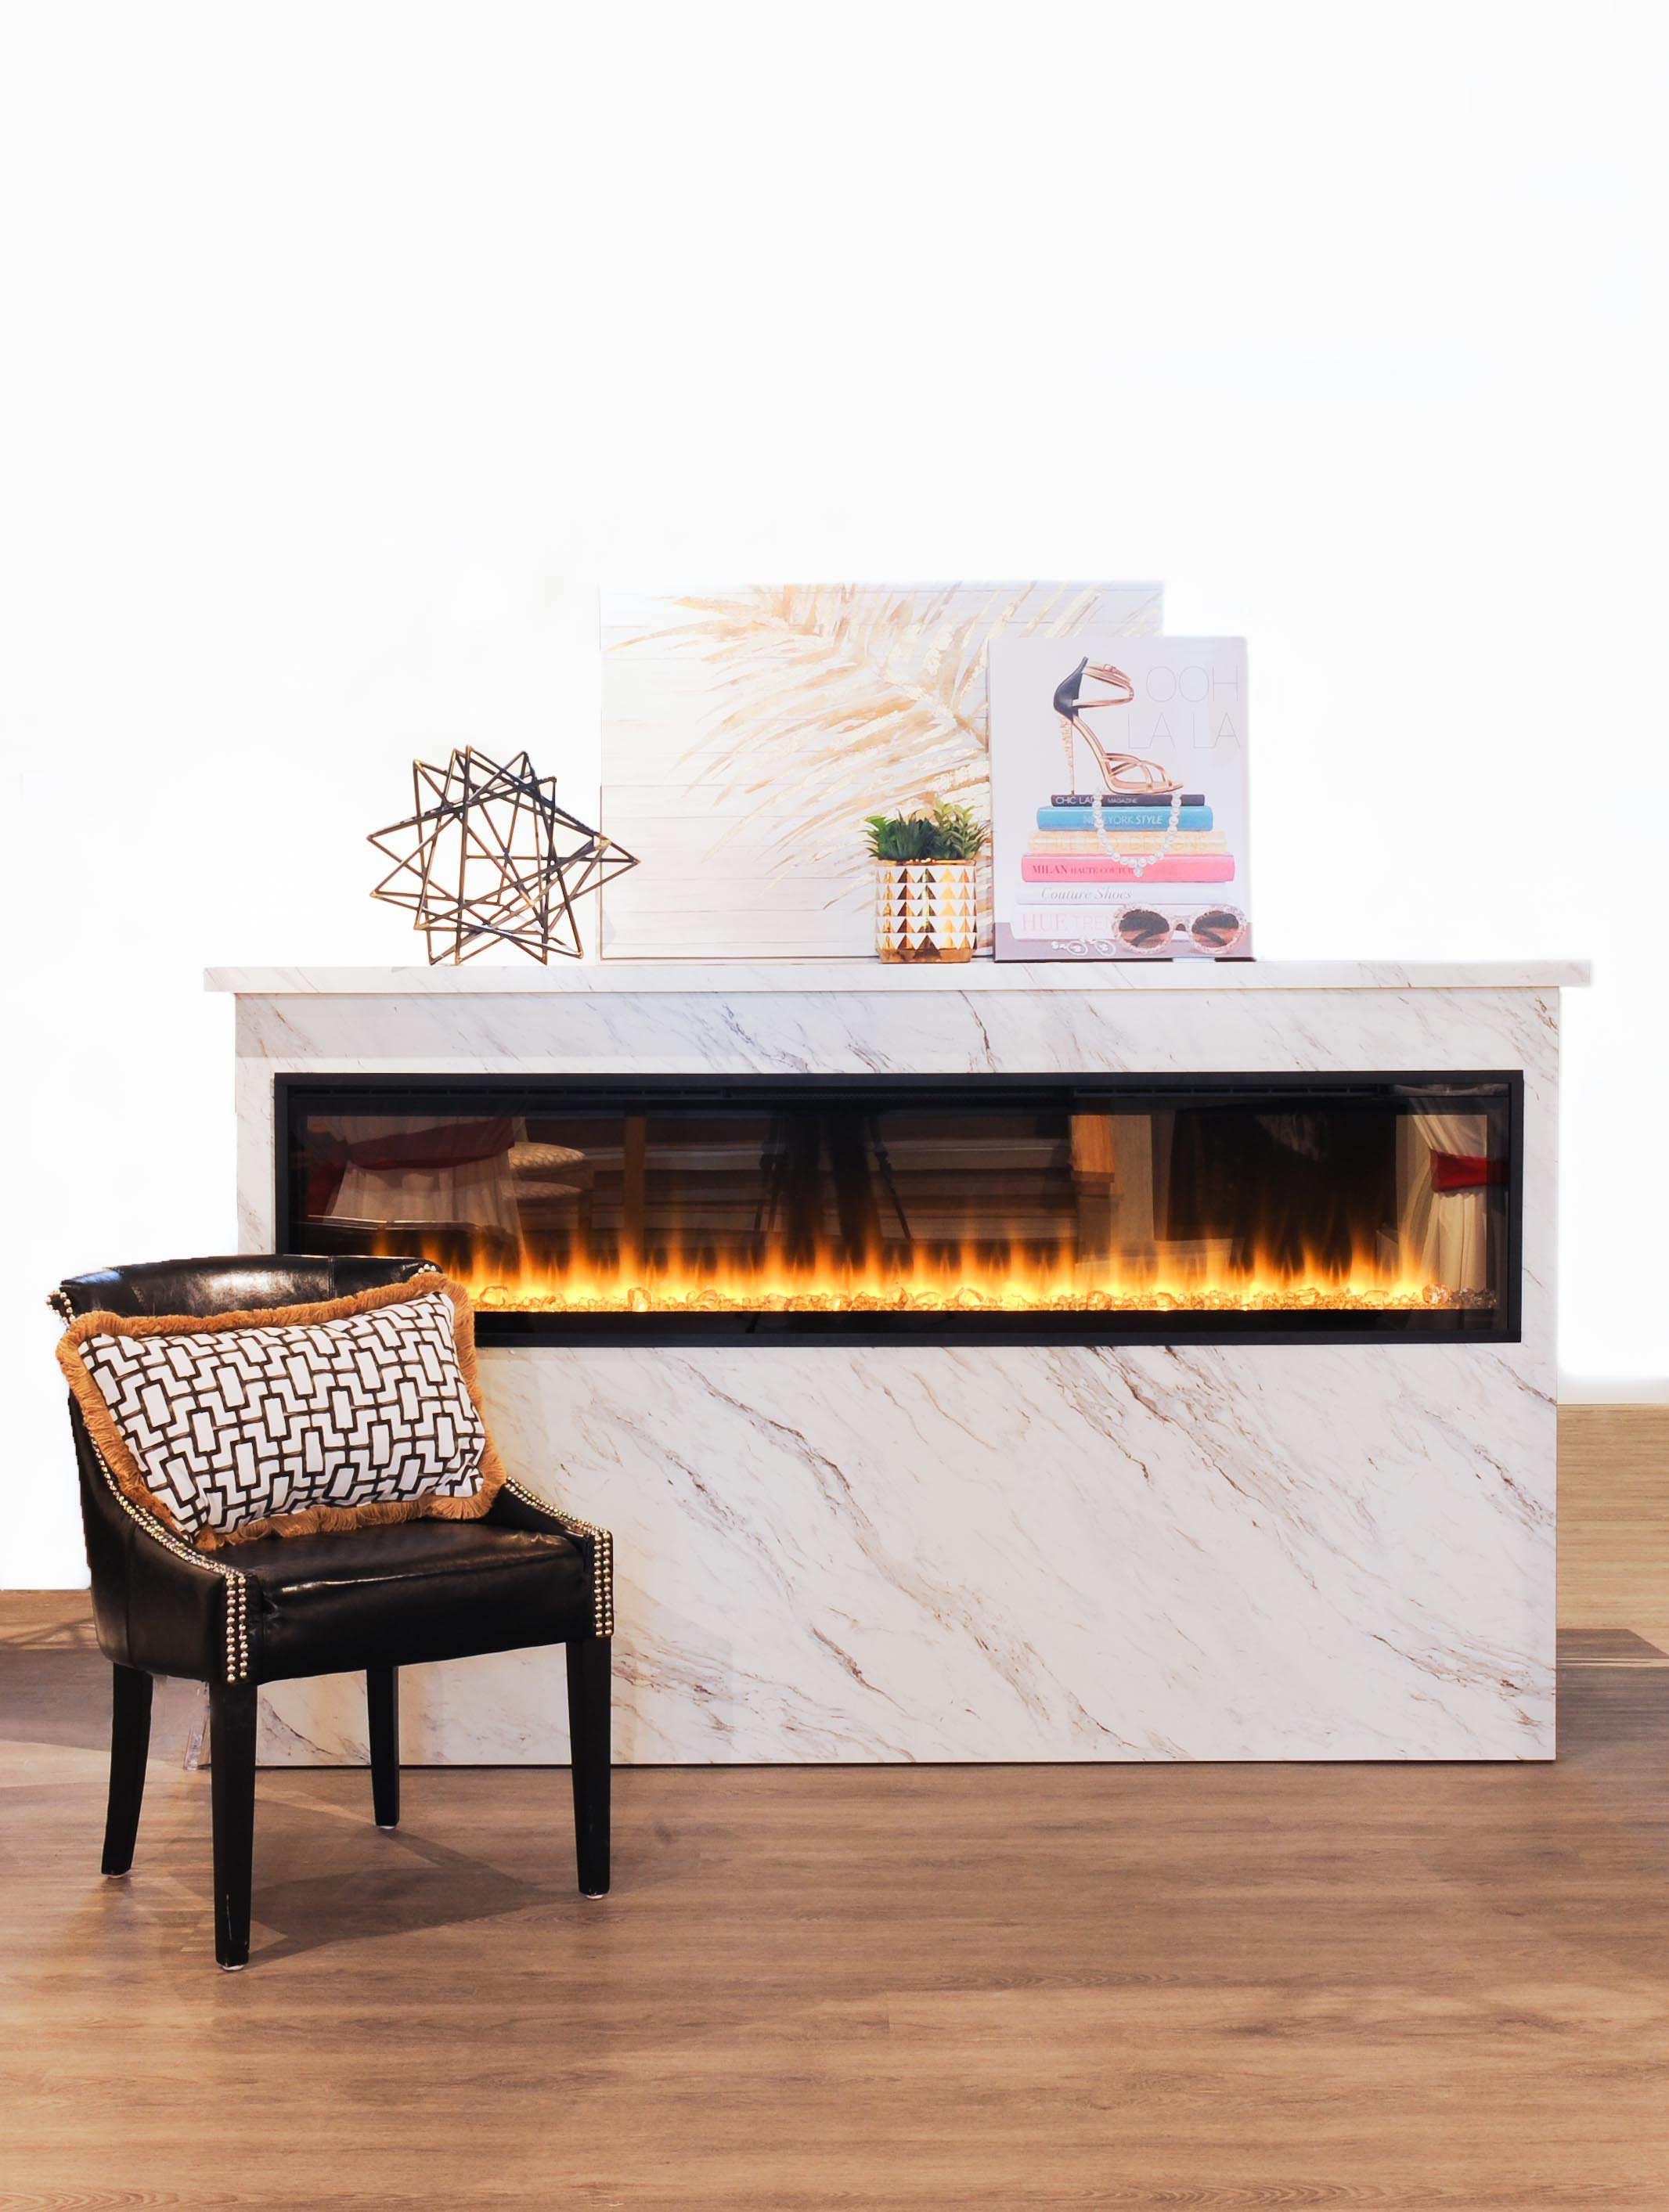 ideas bio table fuel hd firepit wayfair foreste nf fireplace with tabletop soria ardore on nu top flame fireplaces ethanol viesso